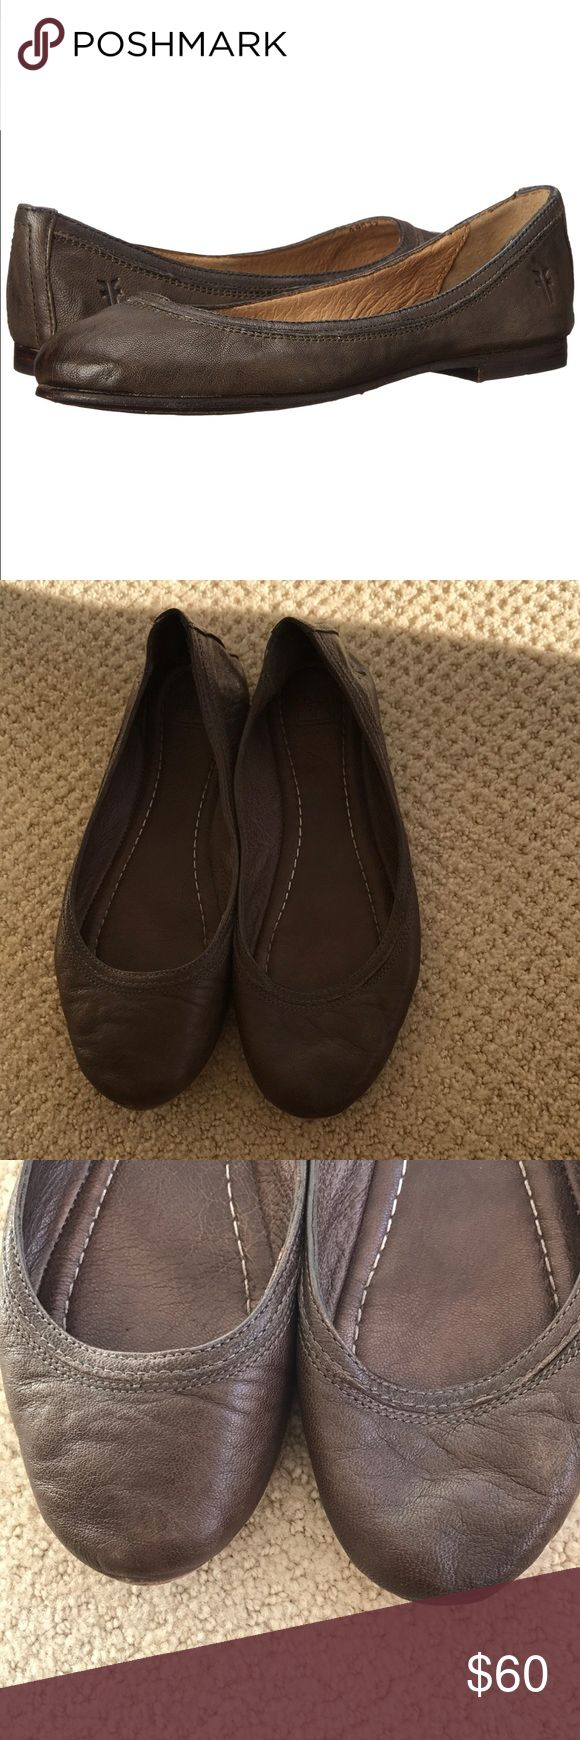 Frye Carson Ballet Flat Frye Carson Ballet Flat Brown Size 6 Minor wear on toe - possible it could be polished out - not noticeable when wearing shoe Frye Shoes Flats & Loafers